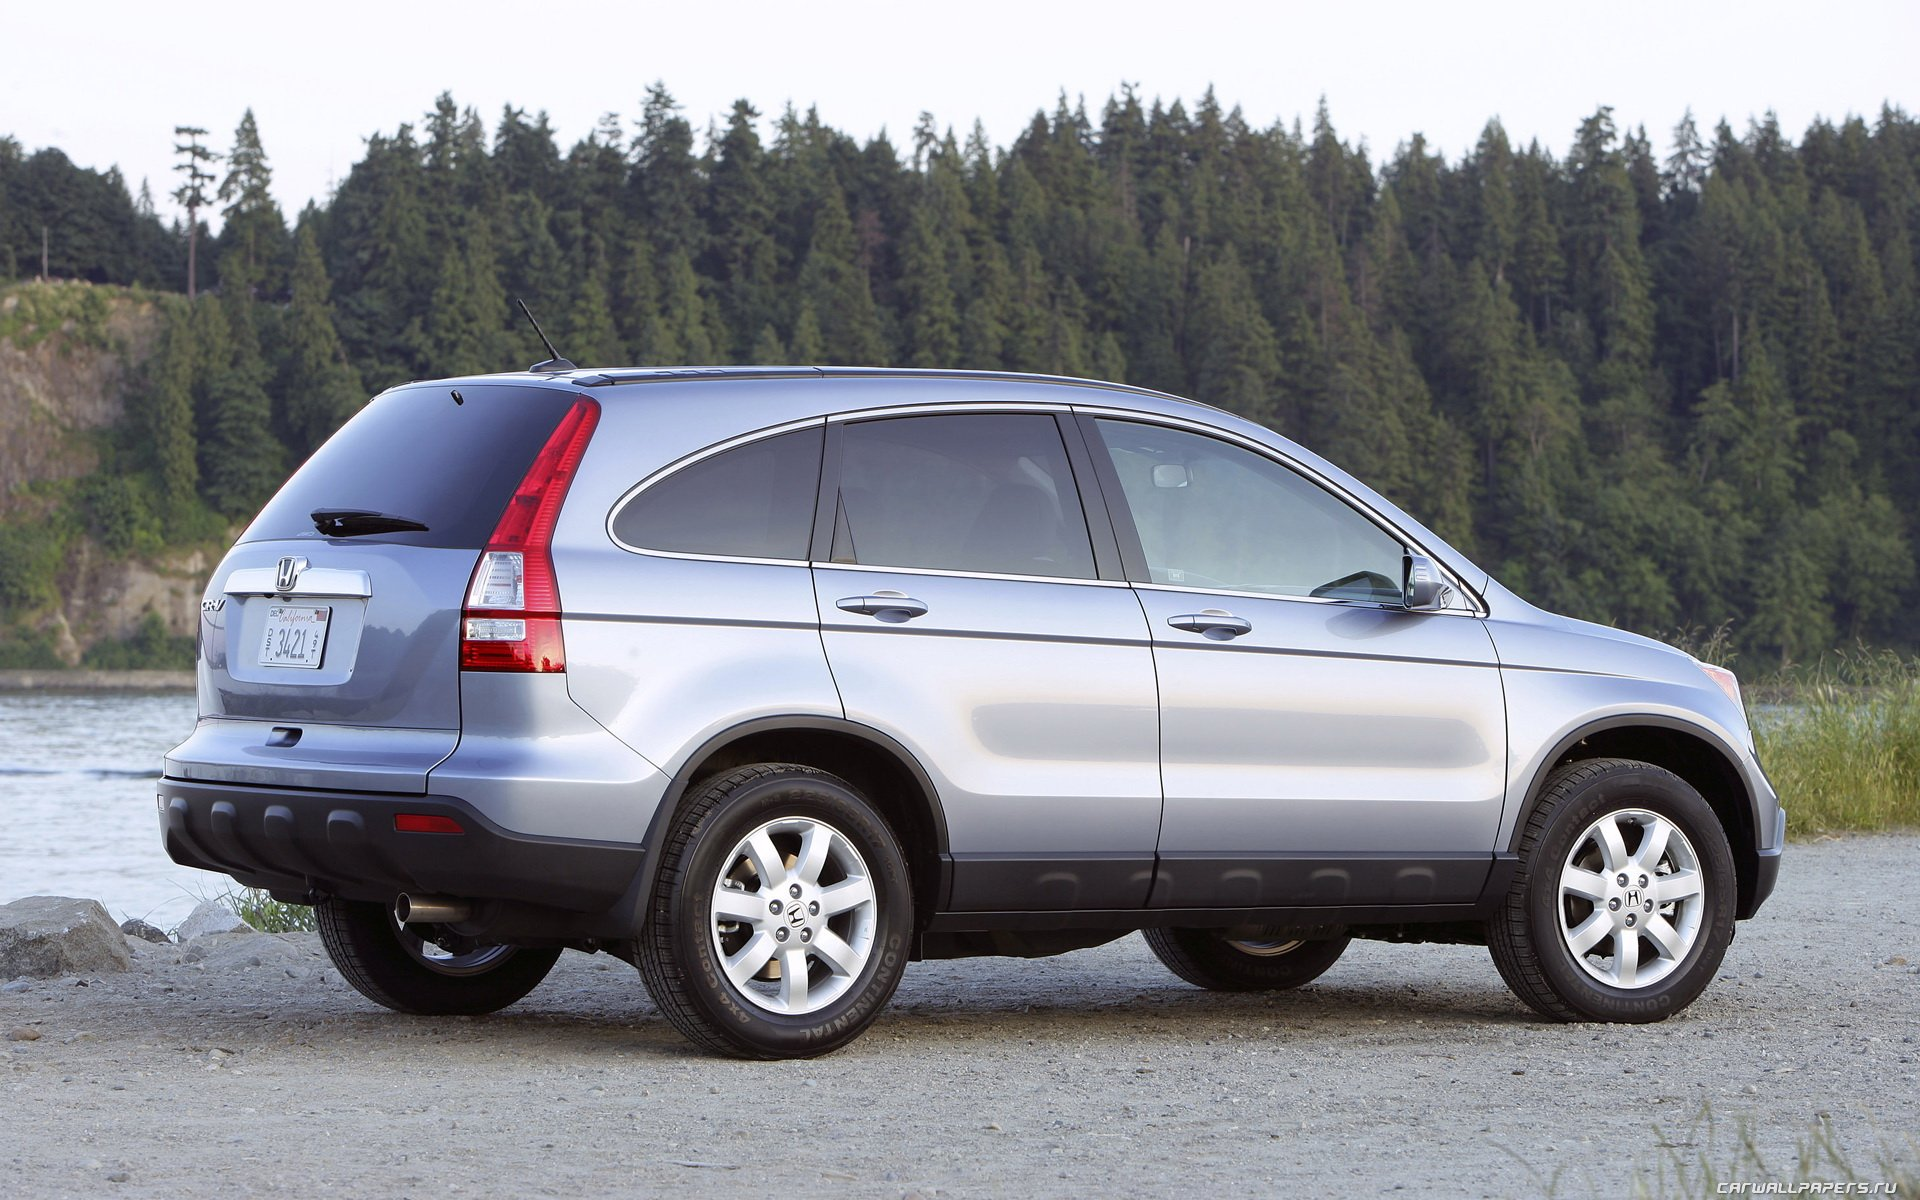 2014 Honda Cr-v iii (re5) - pictures, information and ...